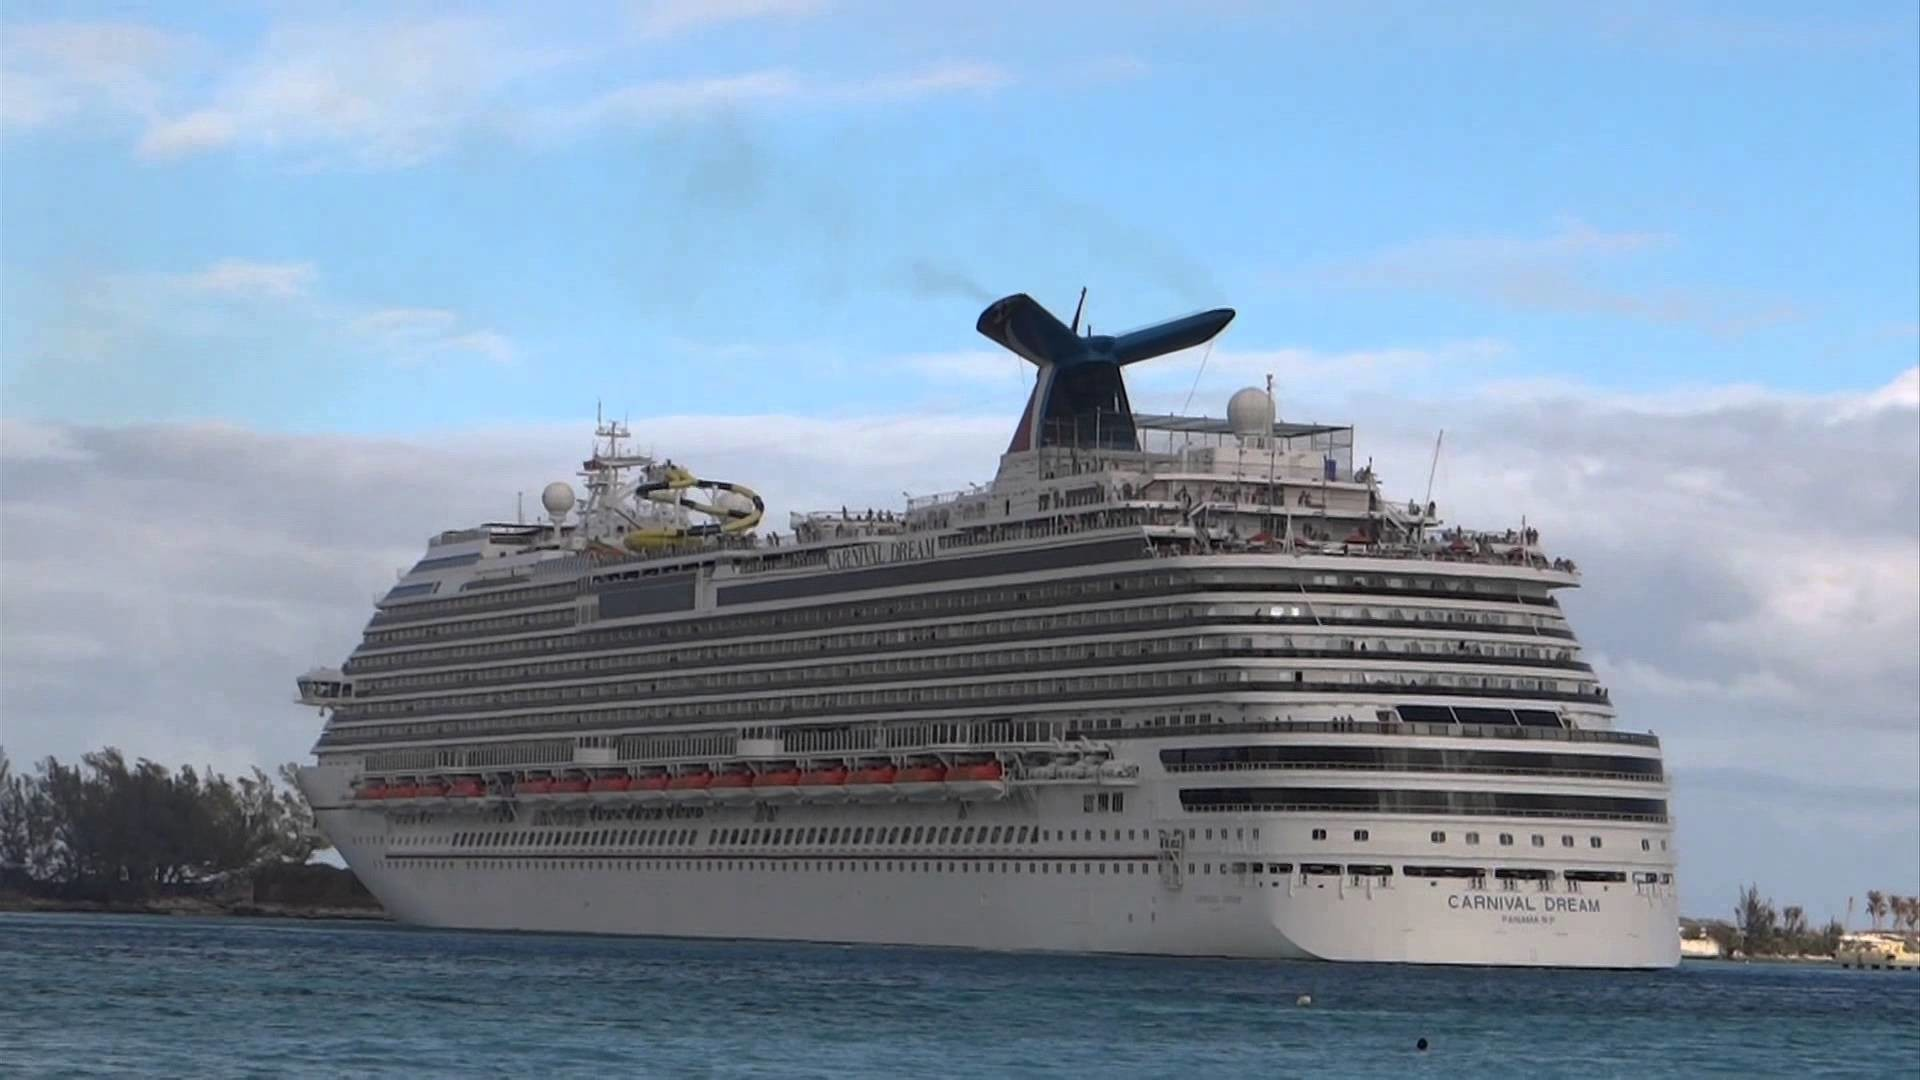 Nassau, The Bahamas – Oasis of the Seas and Carnival Dream Departure HD  (2012) – YouTube